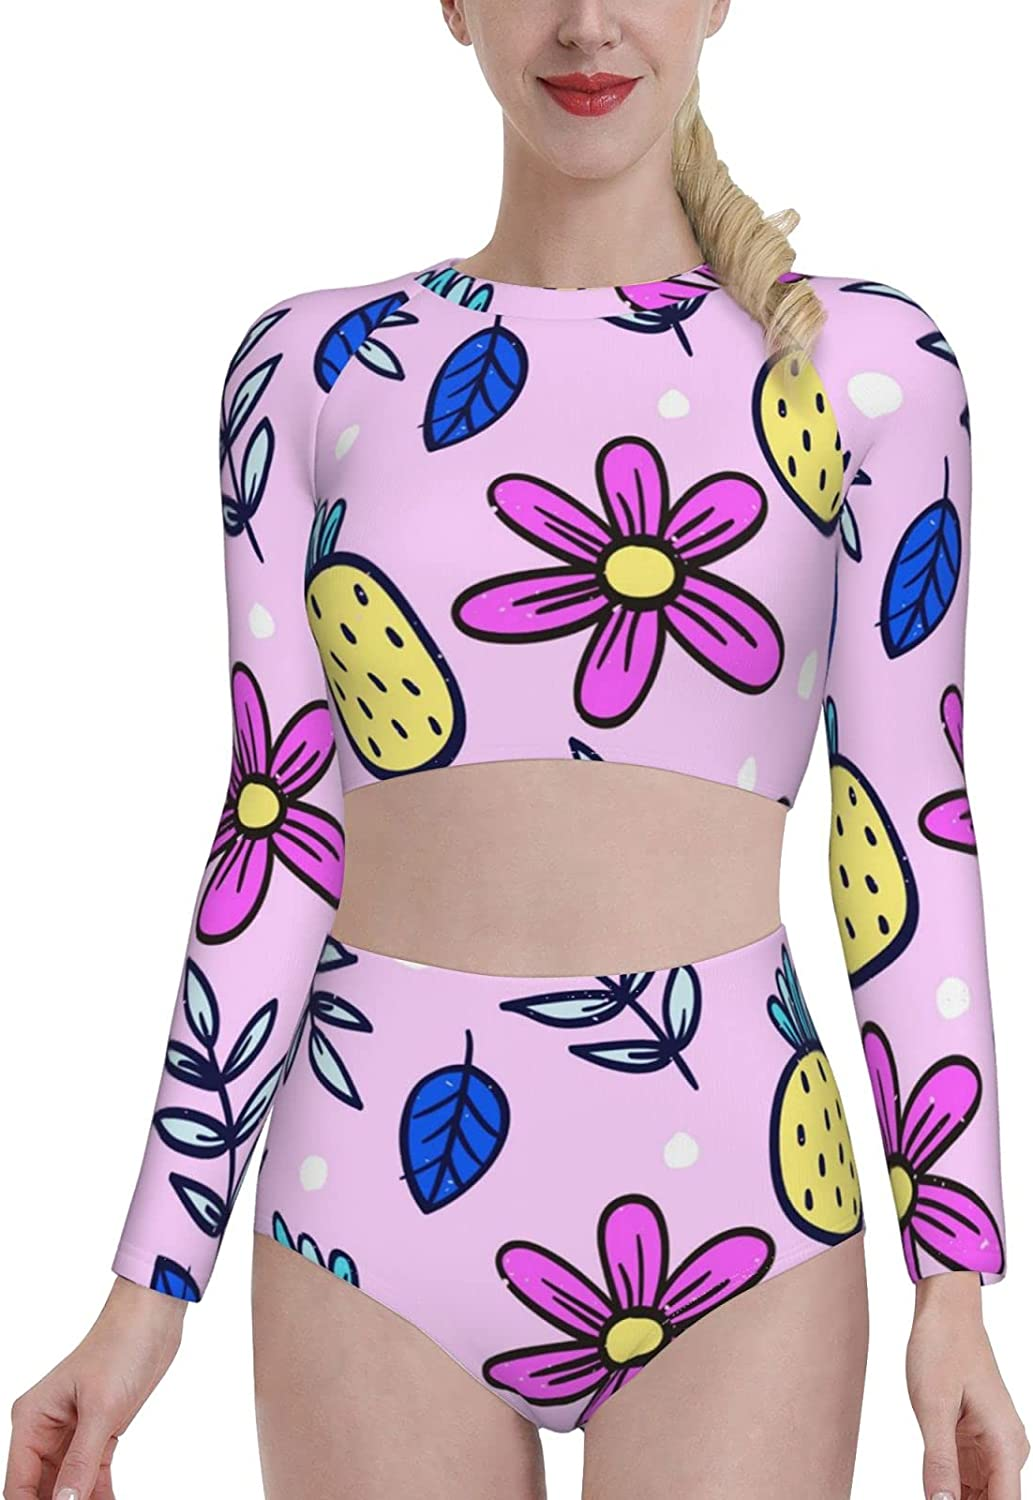 KUOAICY Pineapple with Flower Petals Women's Rash Guard Long Sleeve Bathing Suit with Bra Swimsuit High Waist Pants